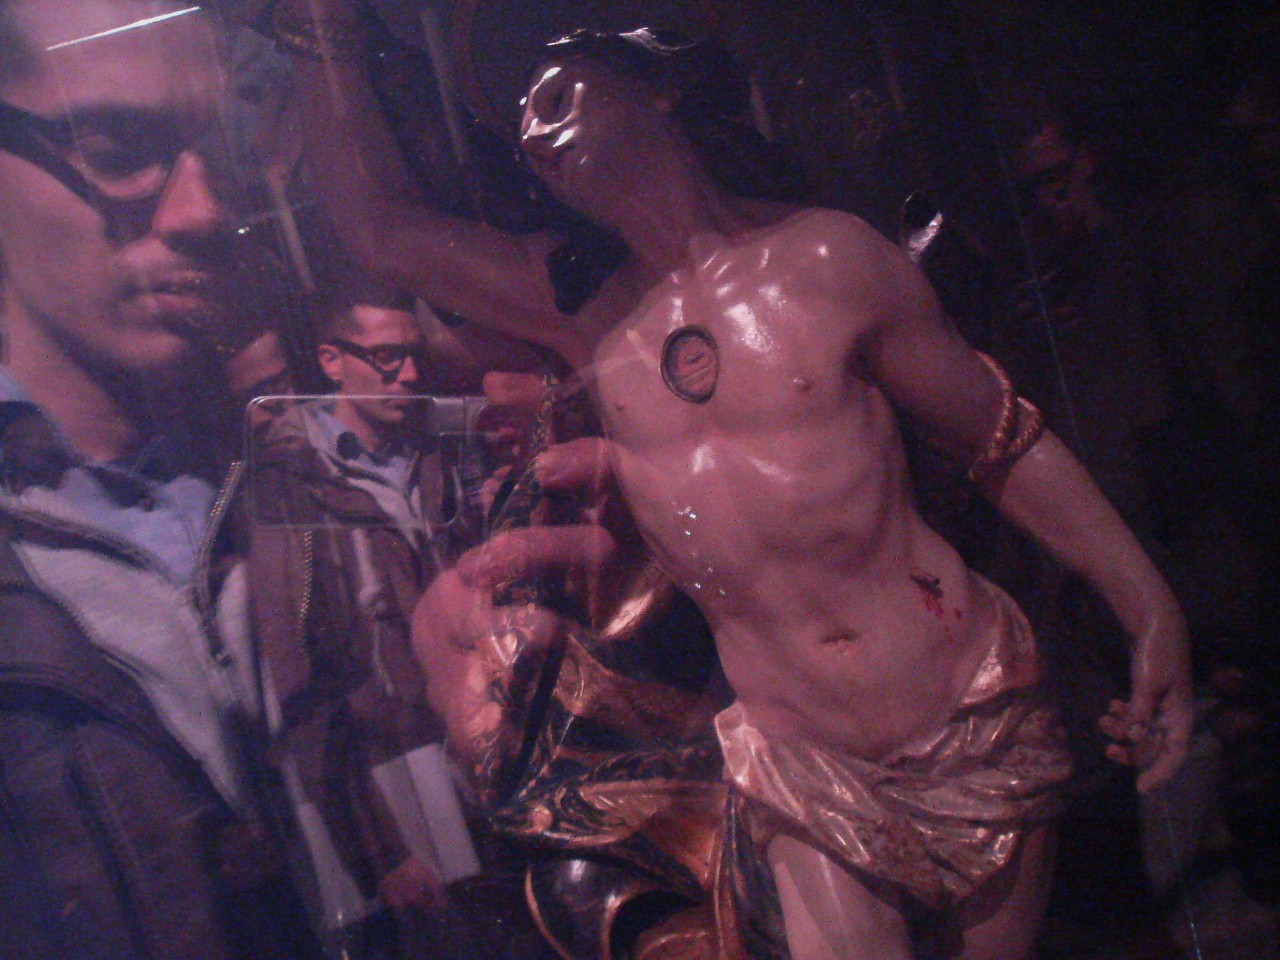 imtackyandihateyou:  Me and Saint Sebastian and me and me and me.